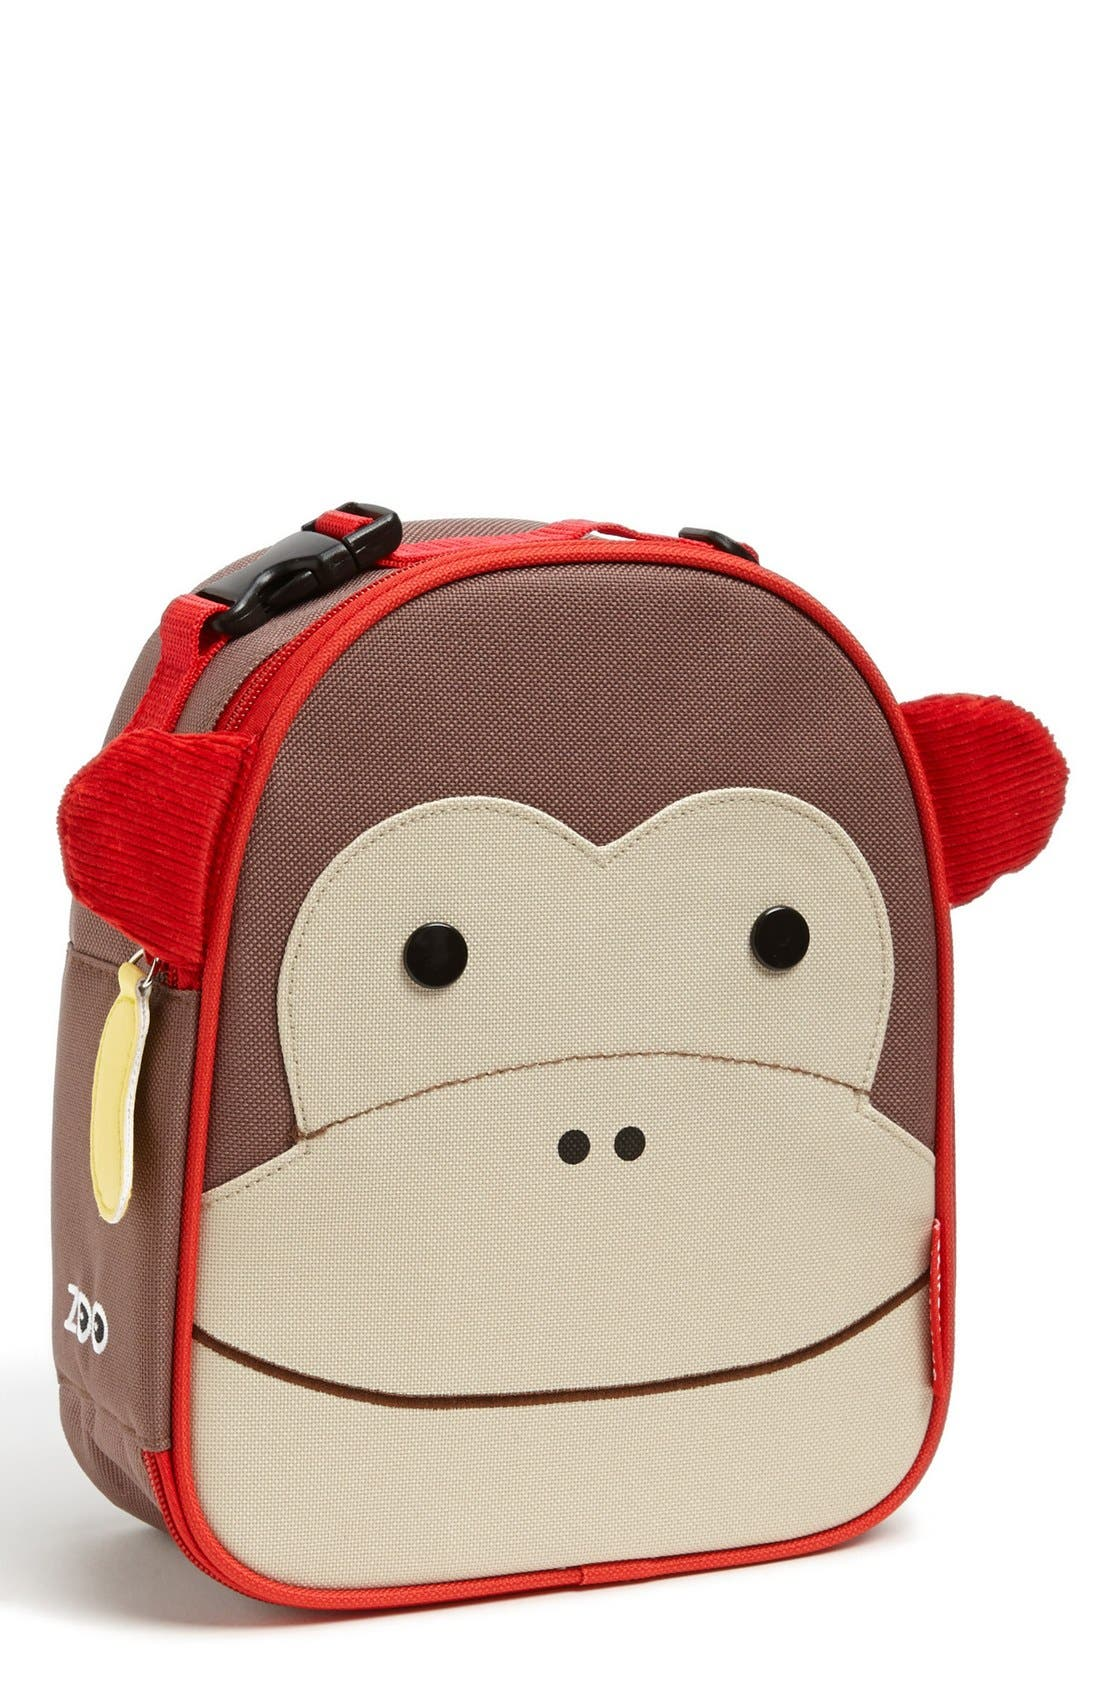 Zoo Lunch Bag,                         Main,                         color, MONKEY